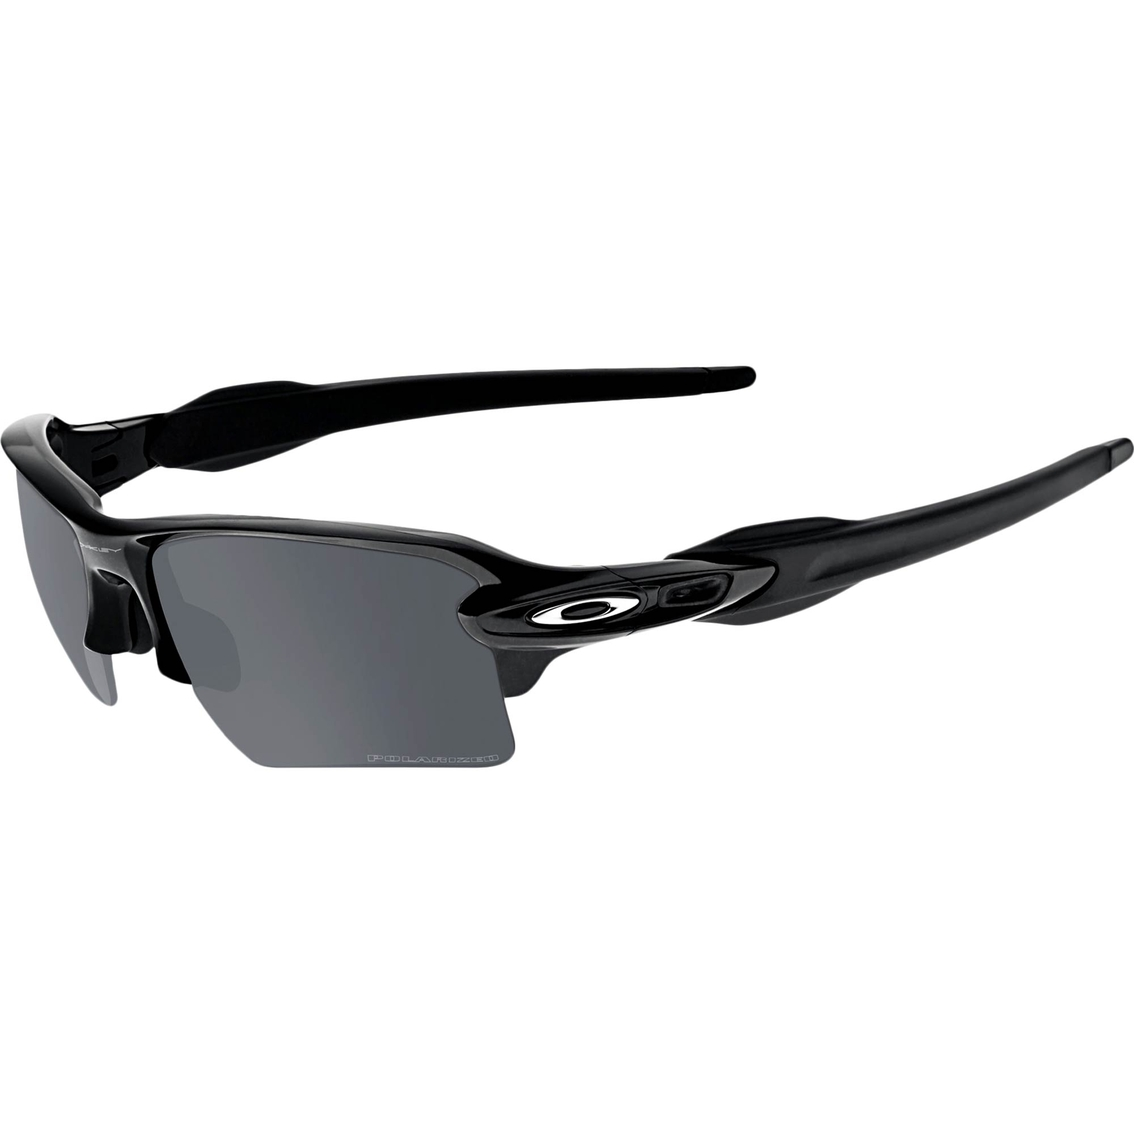 afe0c79e1a Oakley Flak 2.0 XL O Matter Rectangle Plutonite Polarized ANSI Rated  Sunglasses